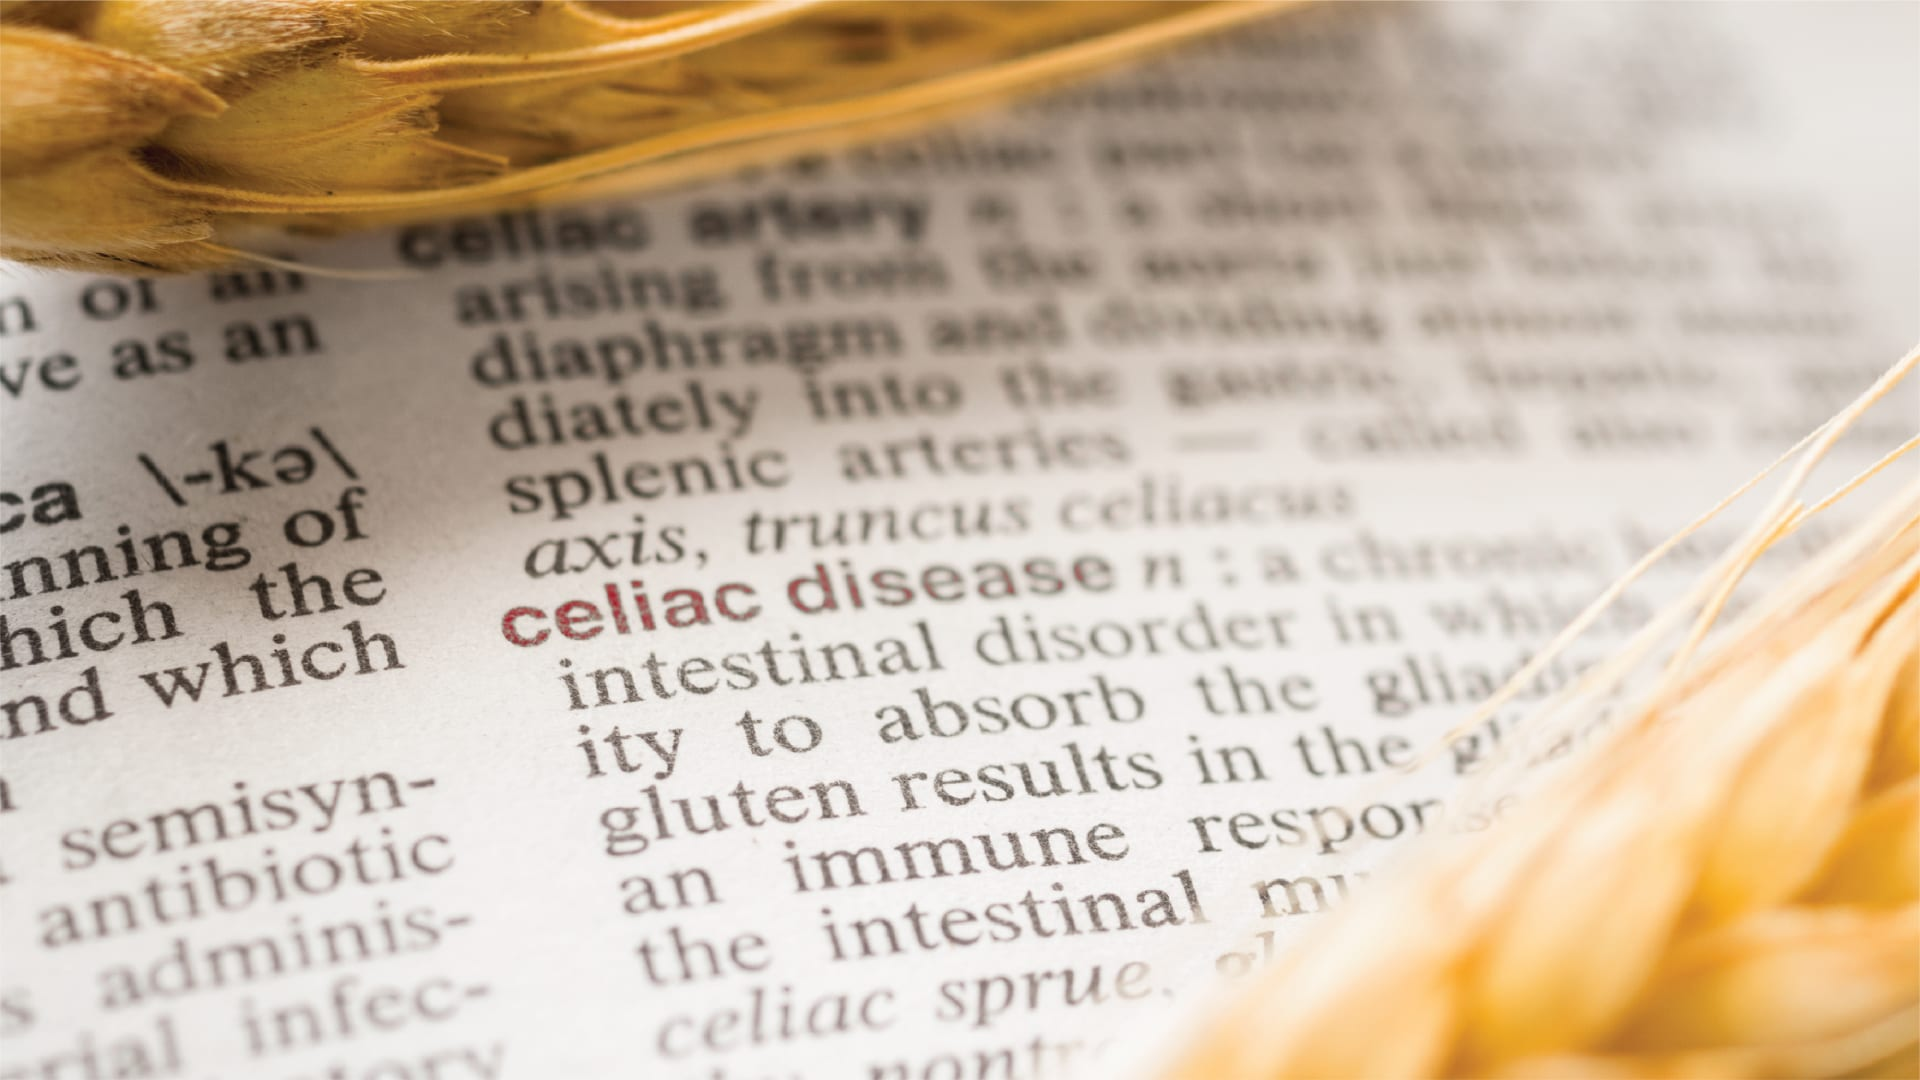 Celiac Disease: Tips for Those Newly Diagnosed